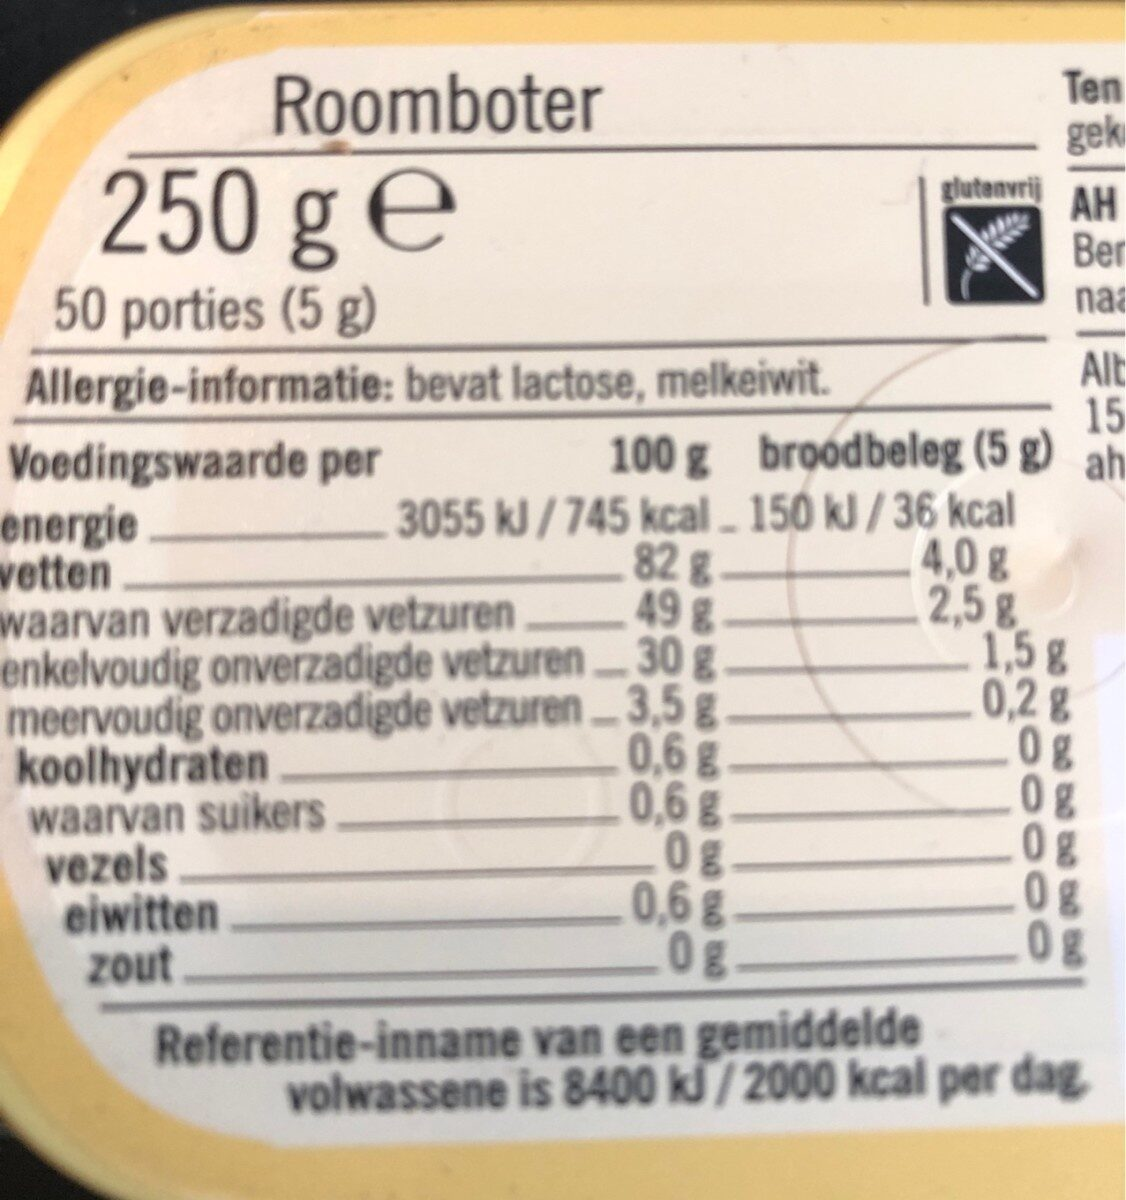 Roomboter - Nutrition facts - nl